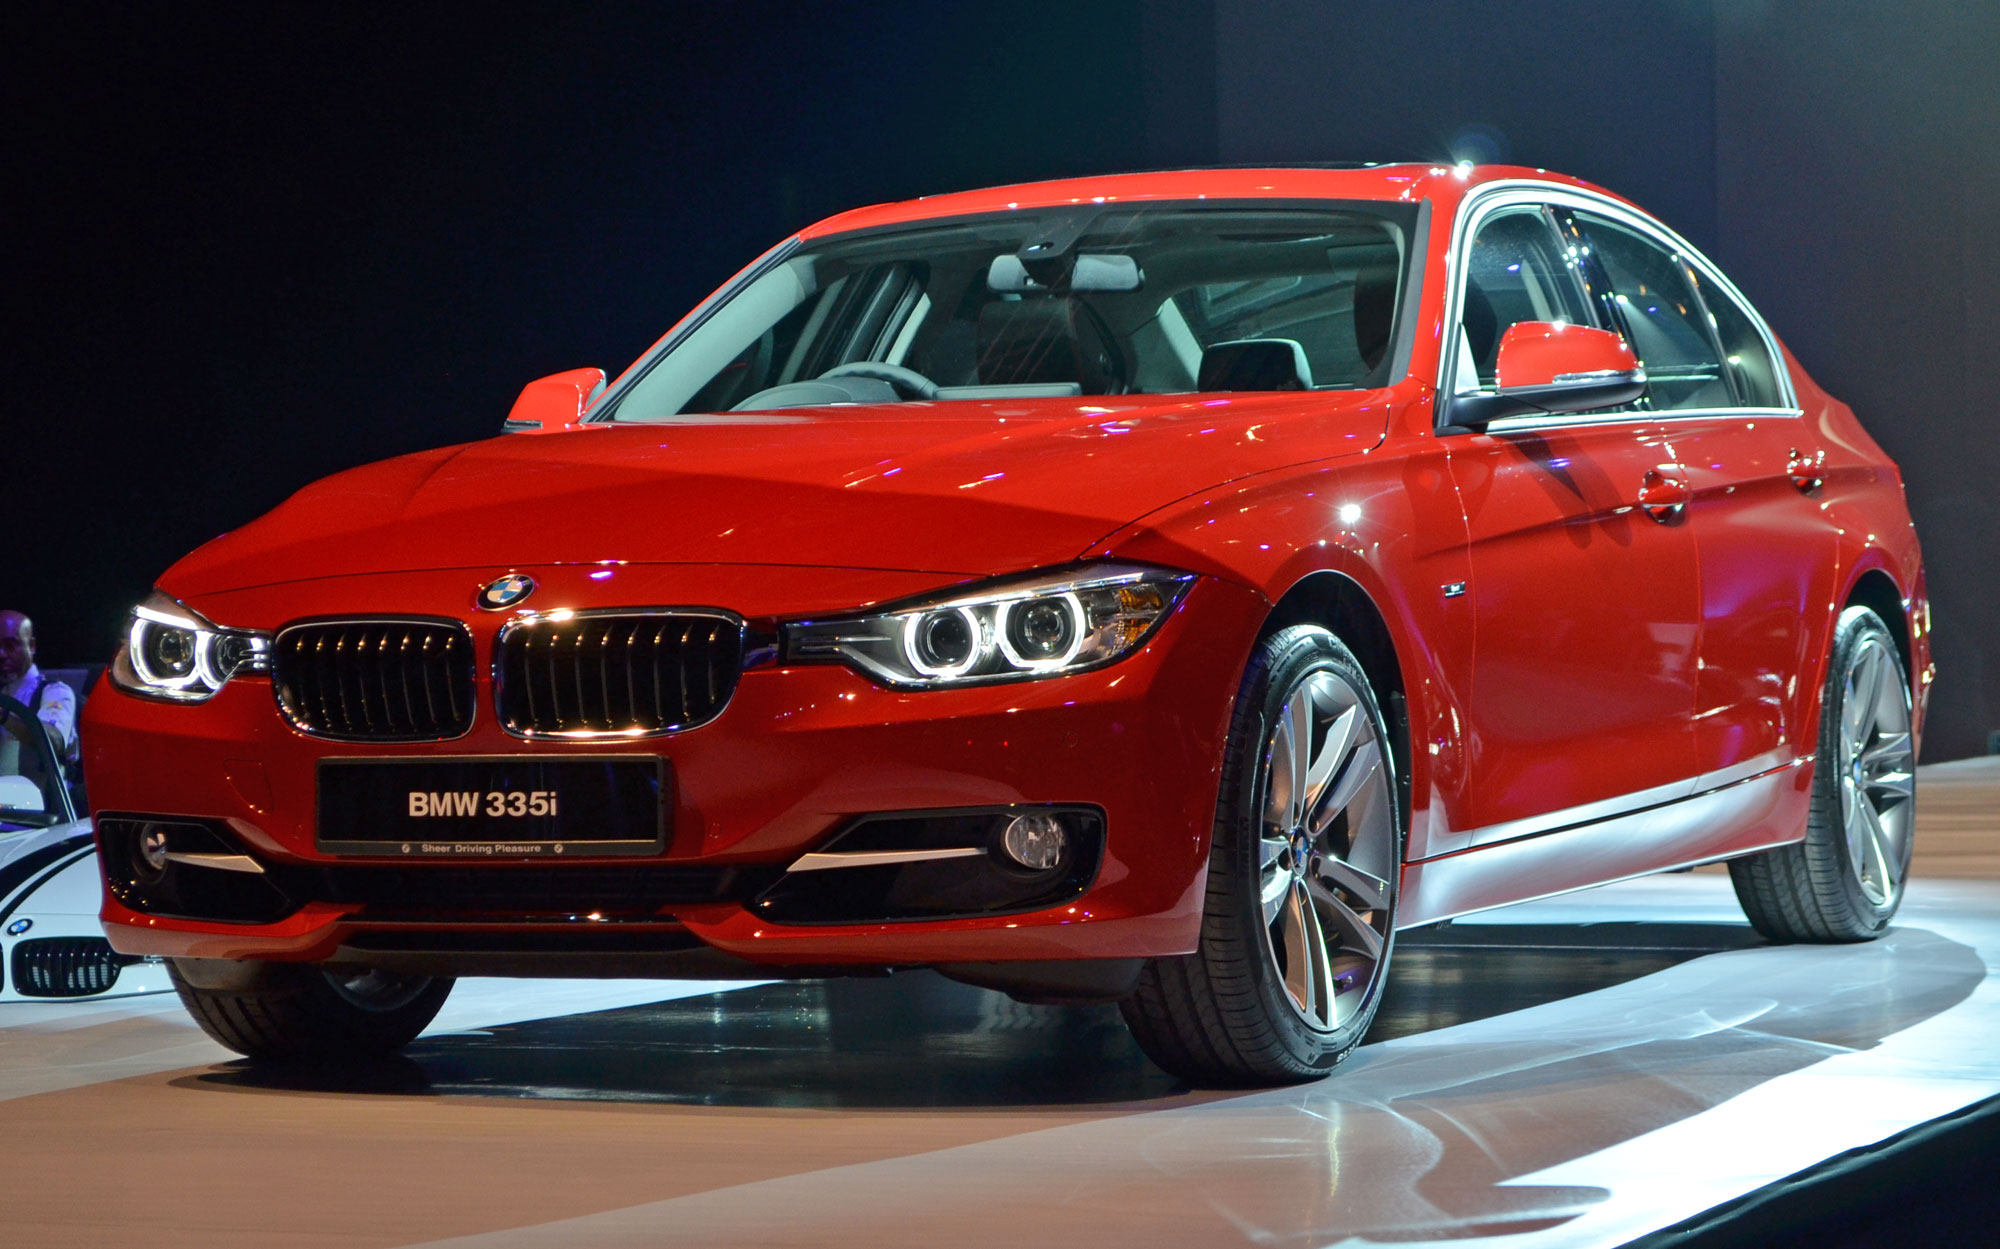 2012 Bmw 328i For Sale >> BMW F30 3-Series launched - 335i, 328i, 320d